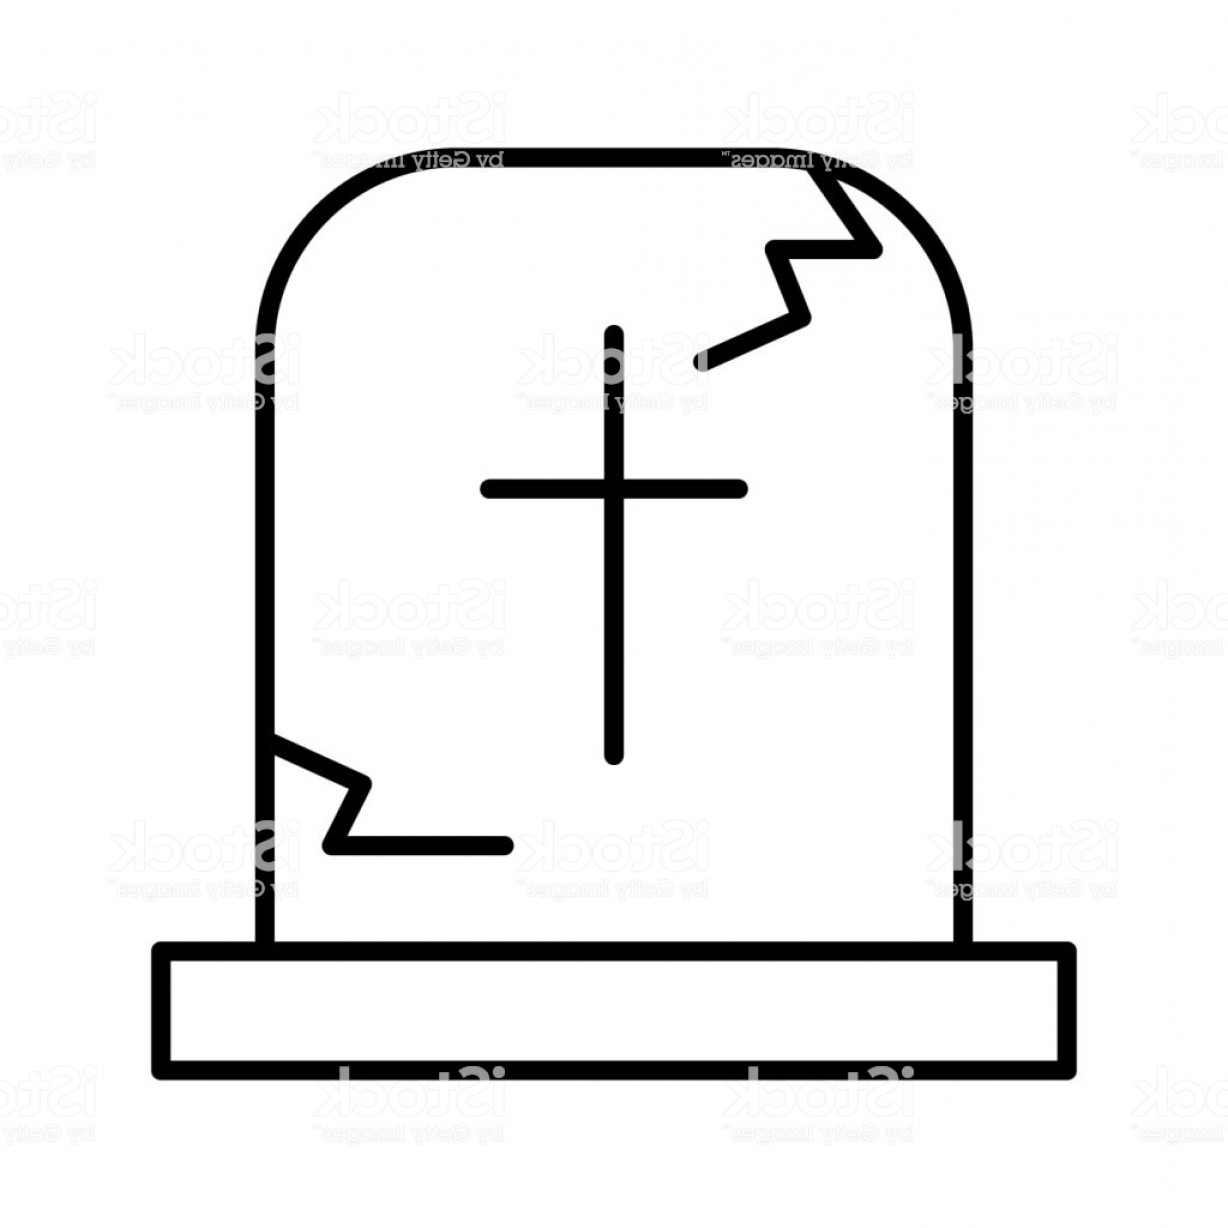 Gravestone Outline Vector: Tombstone Thin Line Icon Grave Web Vector Illustration Isolated On White Gravestone Gm